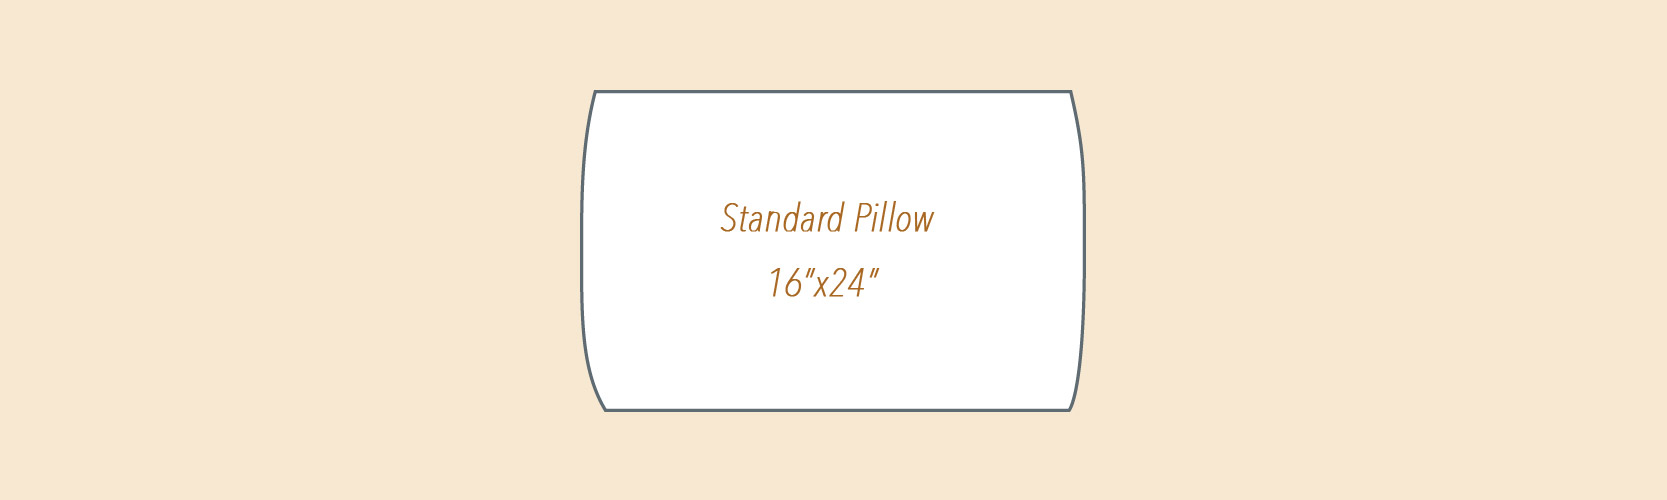 Hypoallergenic Bed Pillows